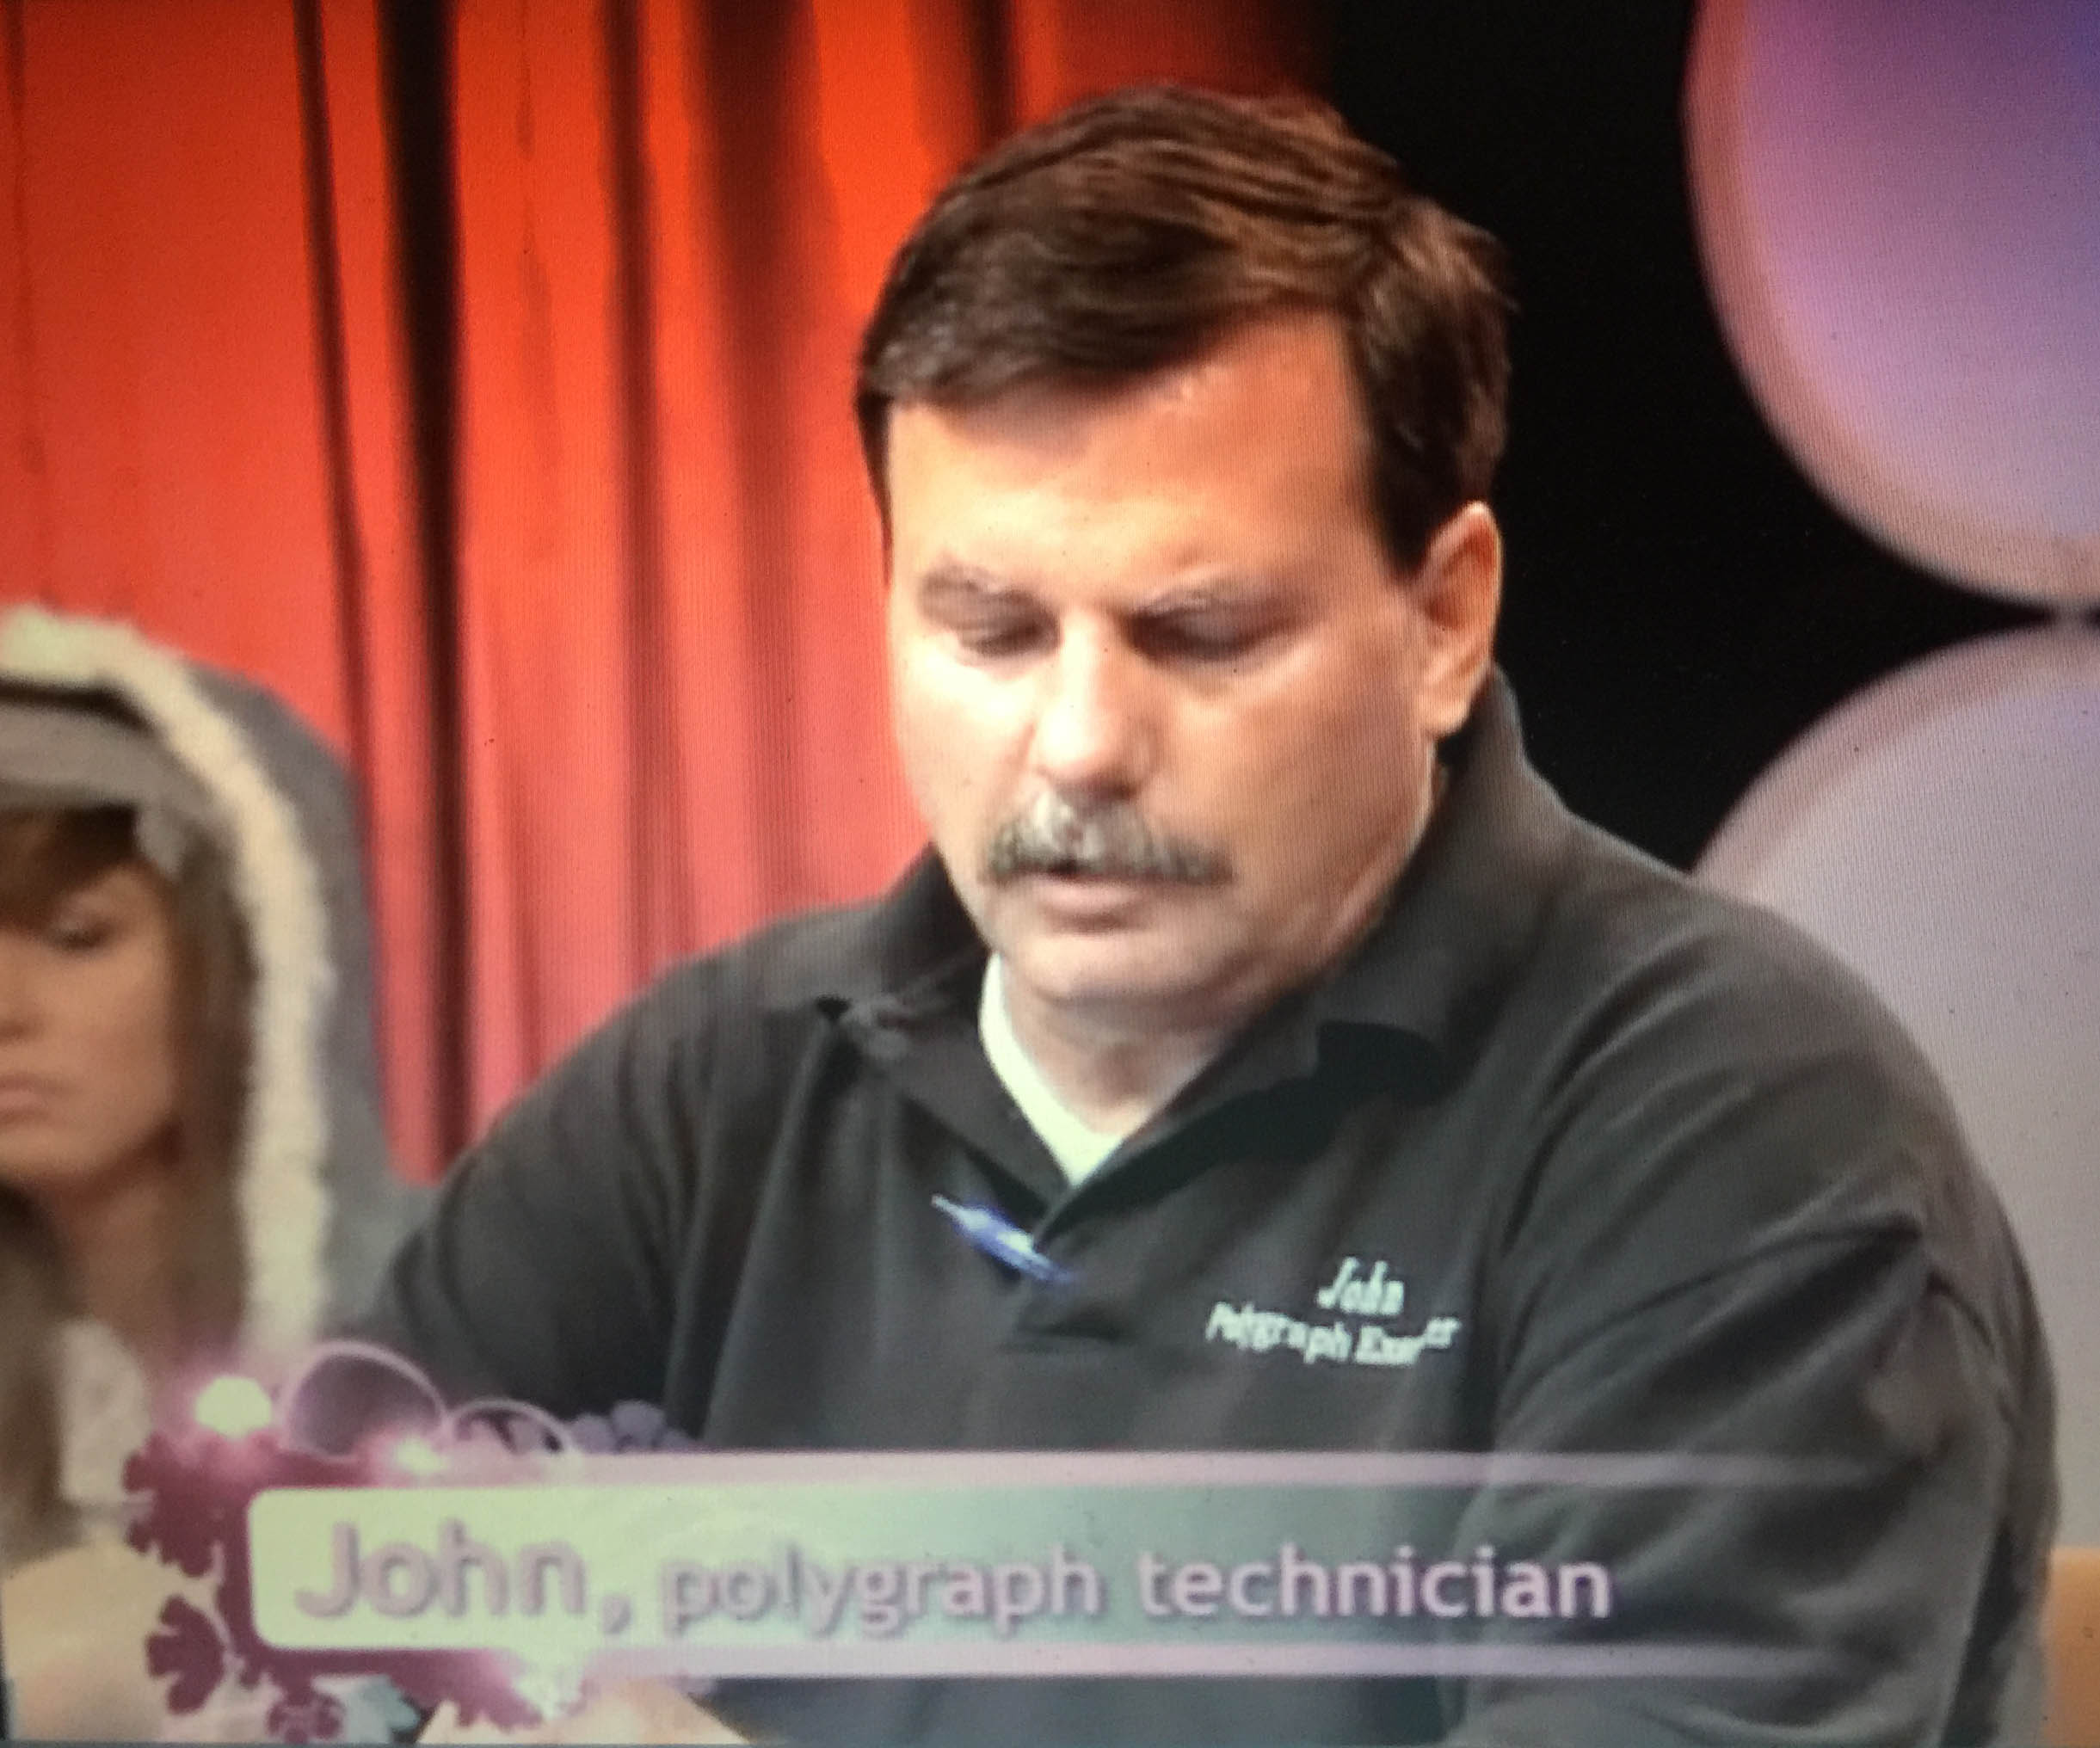 learn polygraph from working polygraph examiners